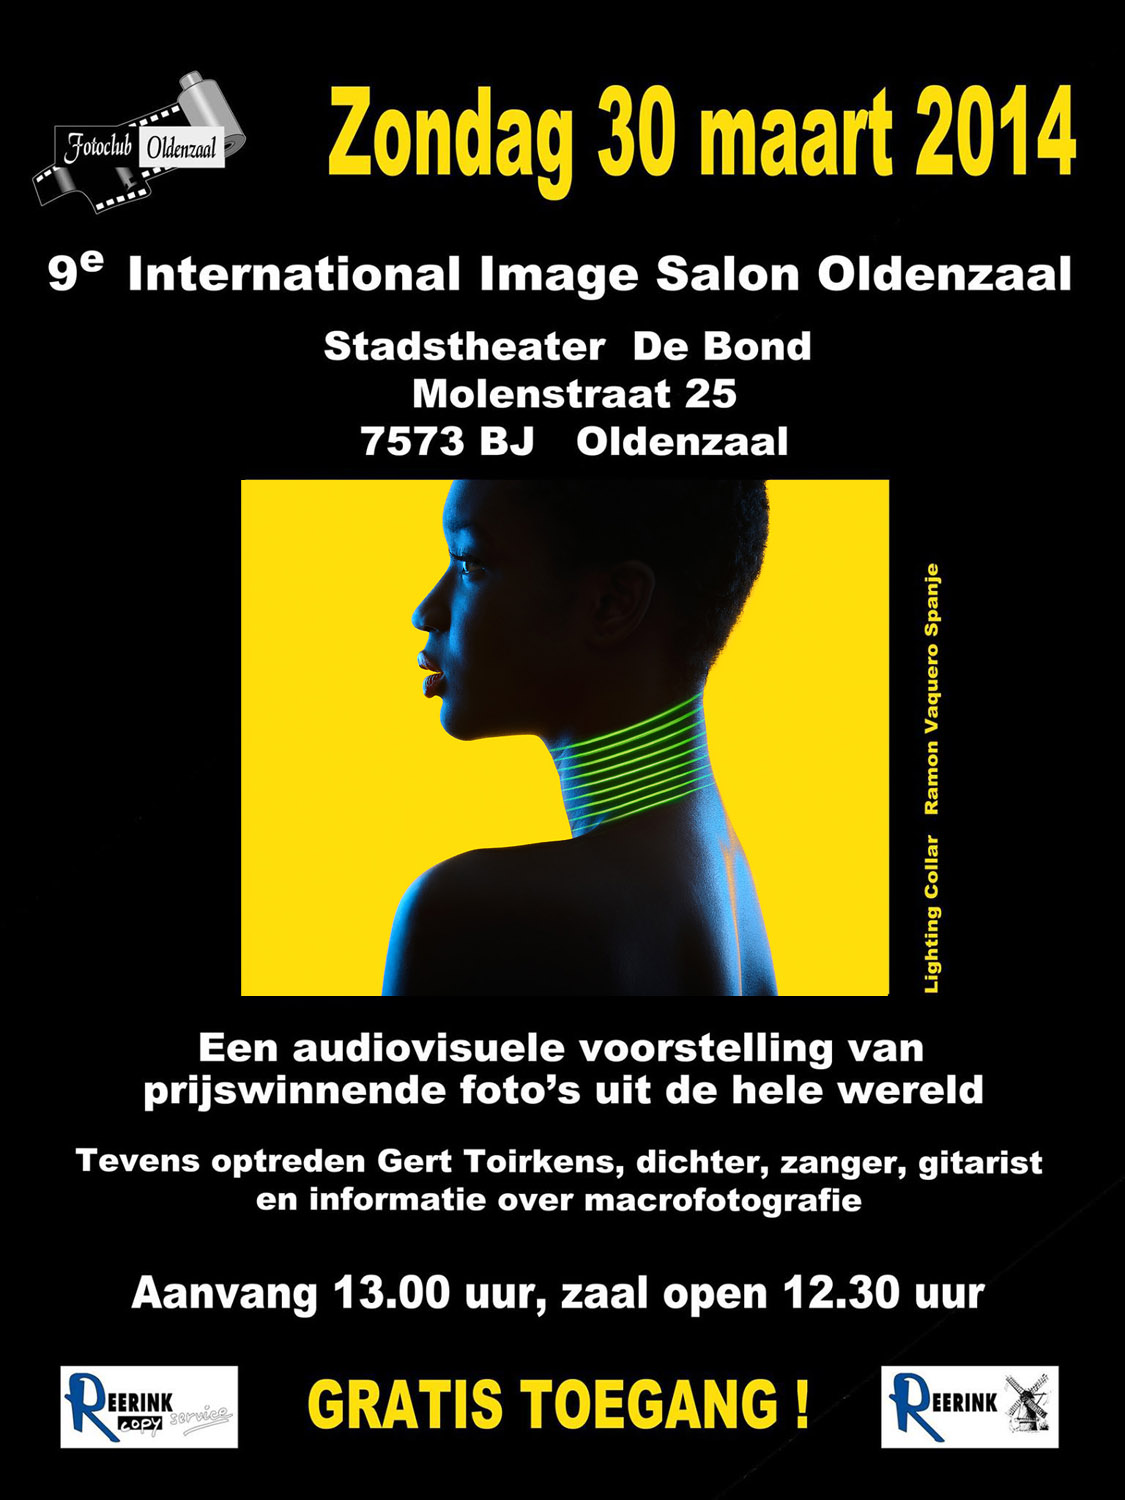 Holland-Image Salon Oldenzaal-Ramon Vaquero